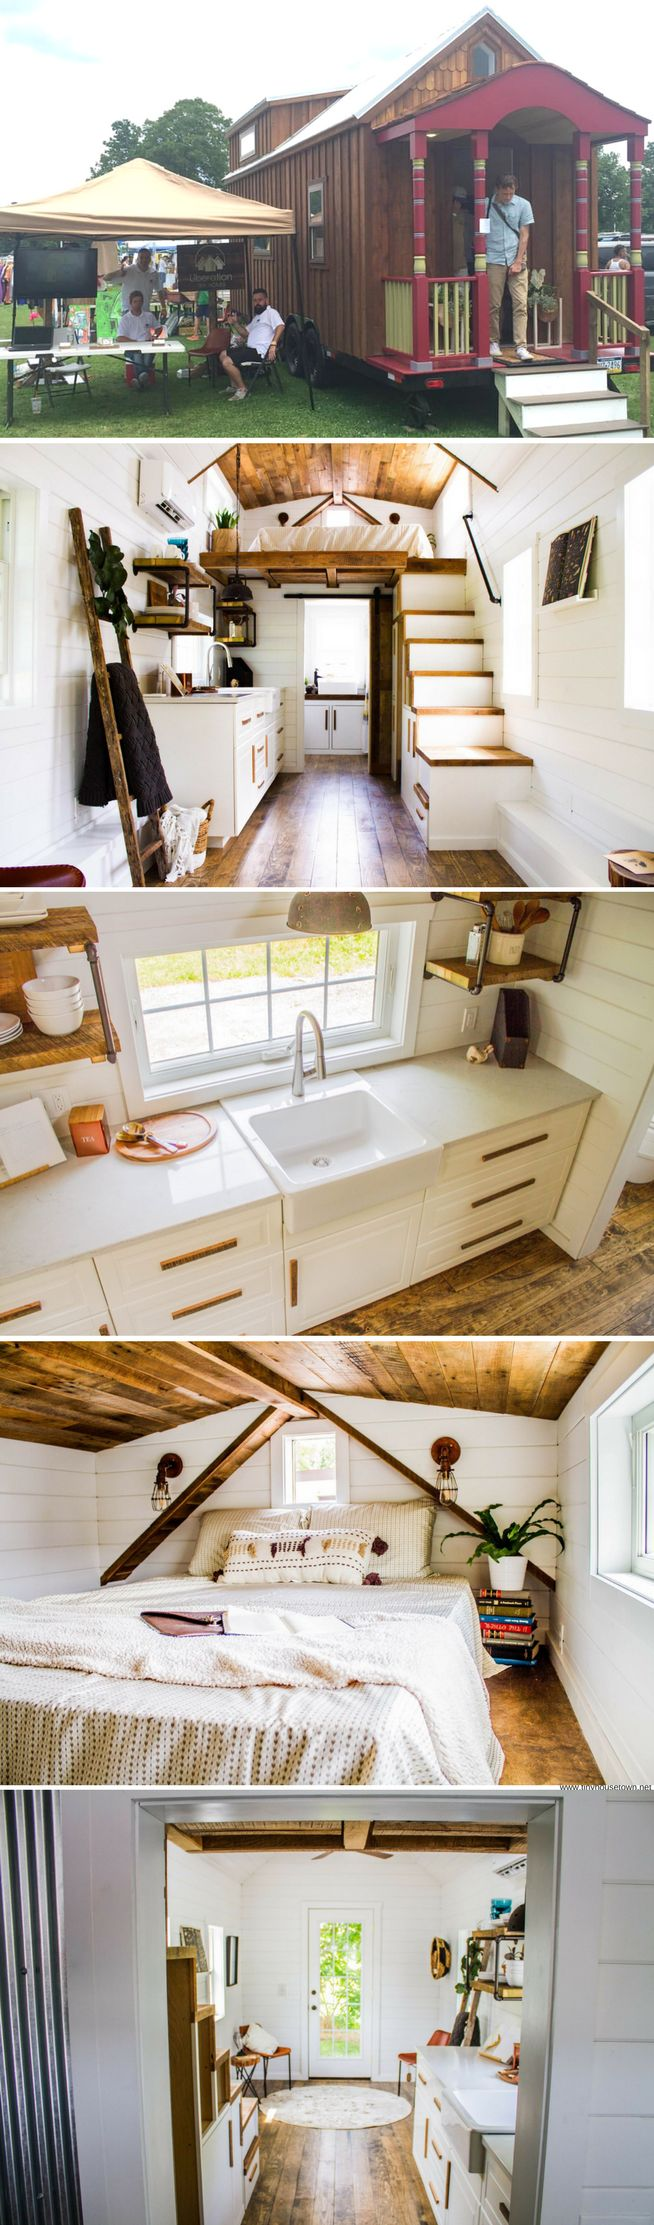 A beautiful farmhouse on wheels from Liberation Tiny Homes!